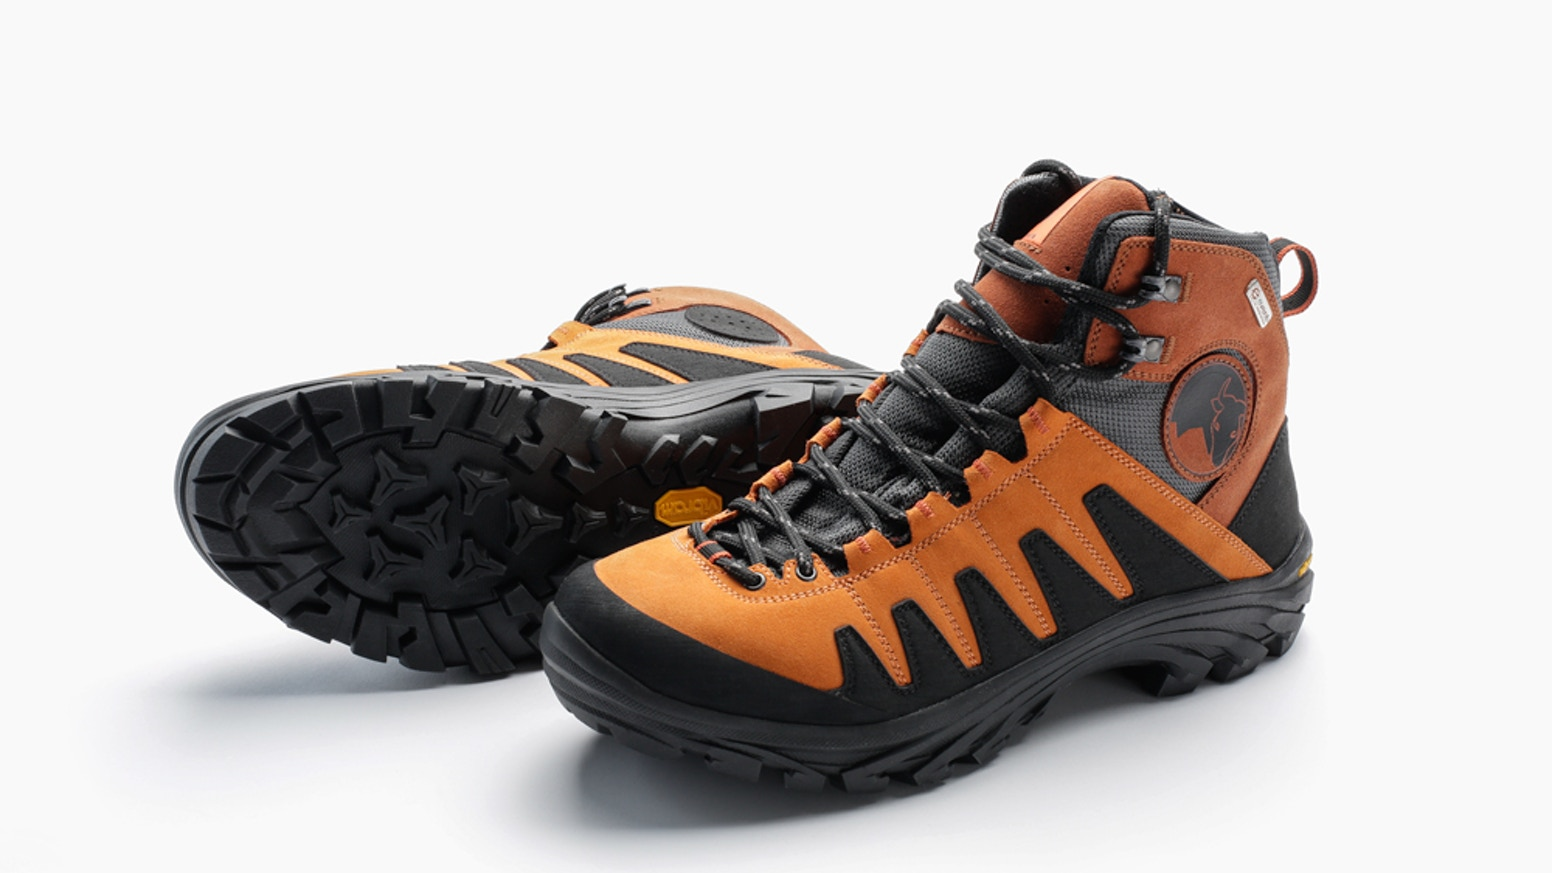 Say GOODBYE to sweaty & smelly feet with world's most breathable, comfortable, durable, waterproof boots - MADE IN EUROPE !!